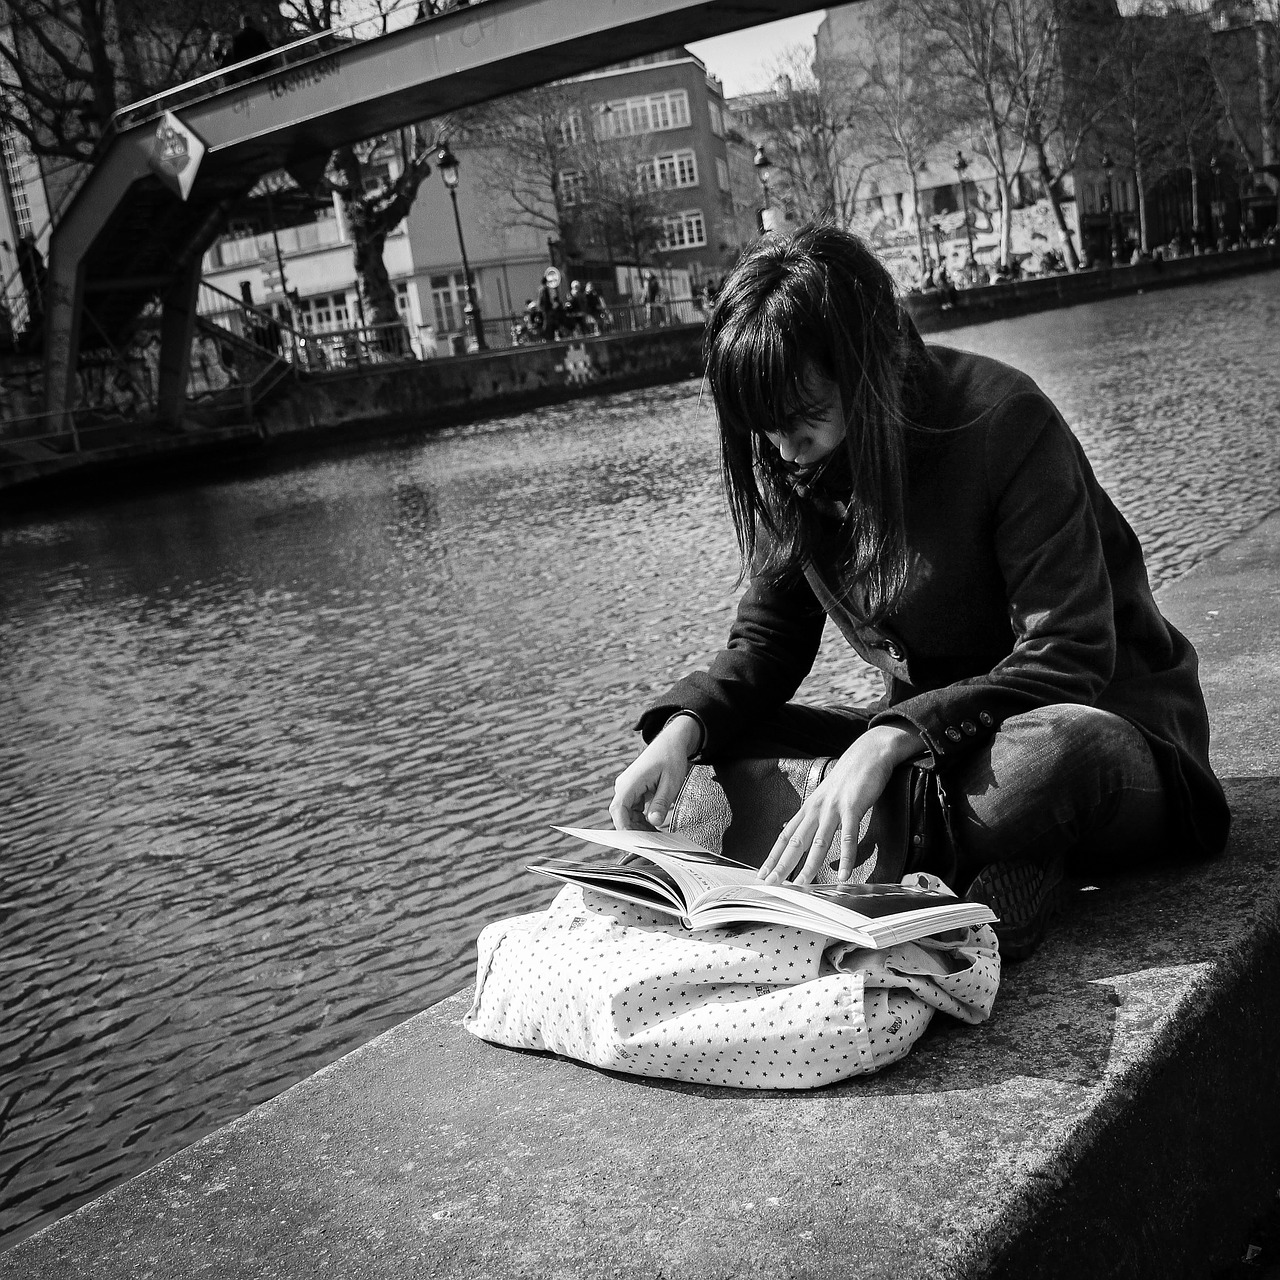 Working in Paris as a Student - girl reading by the canal